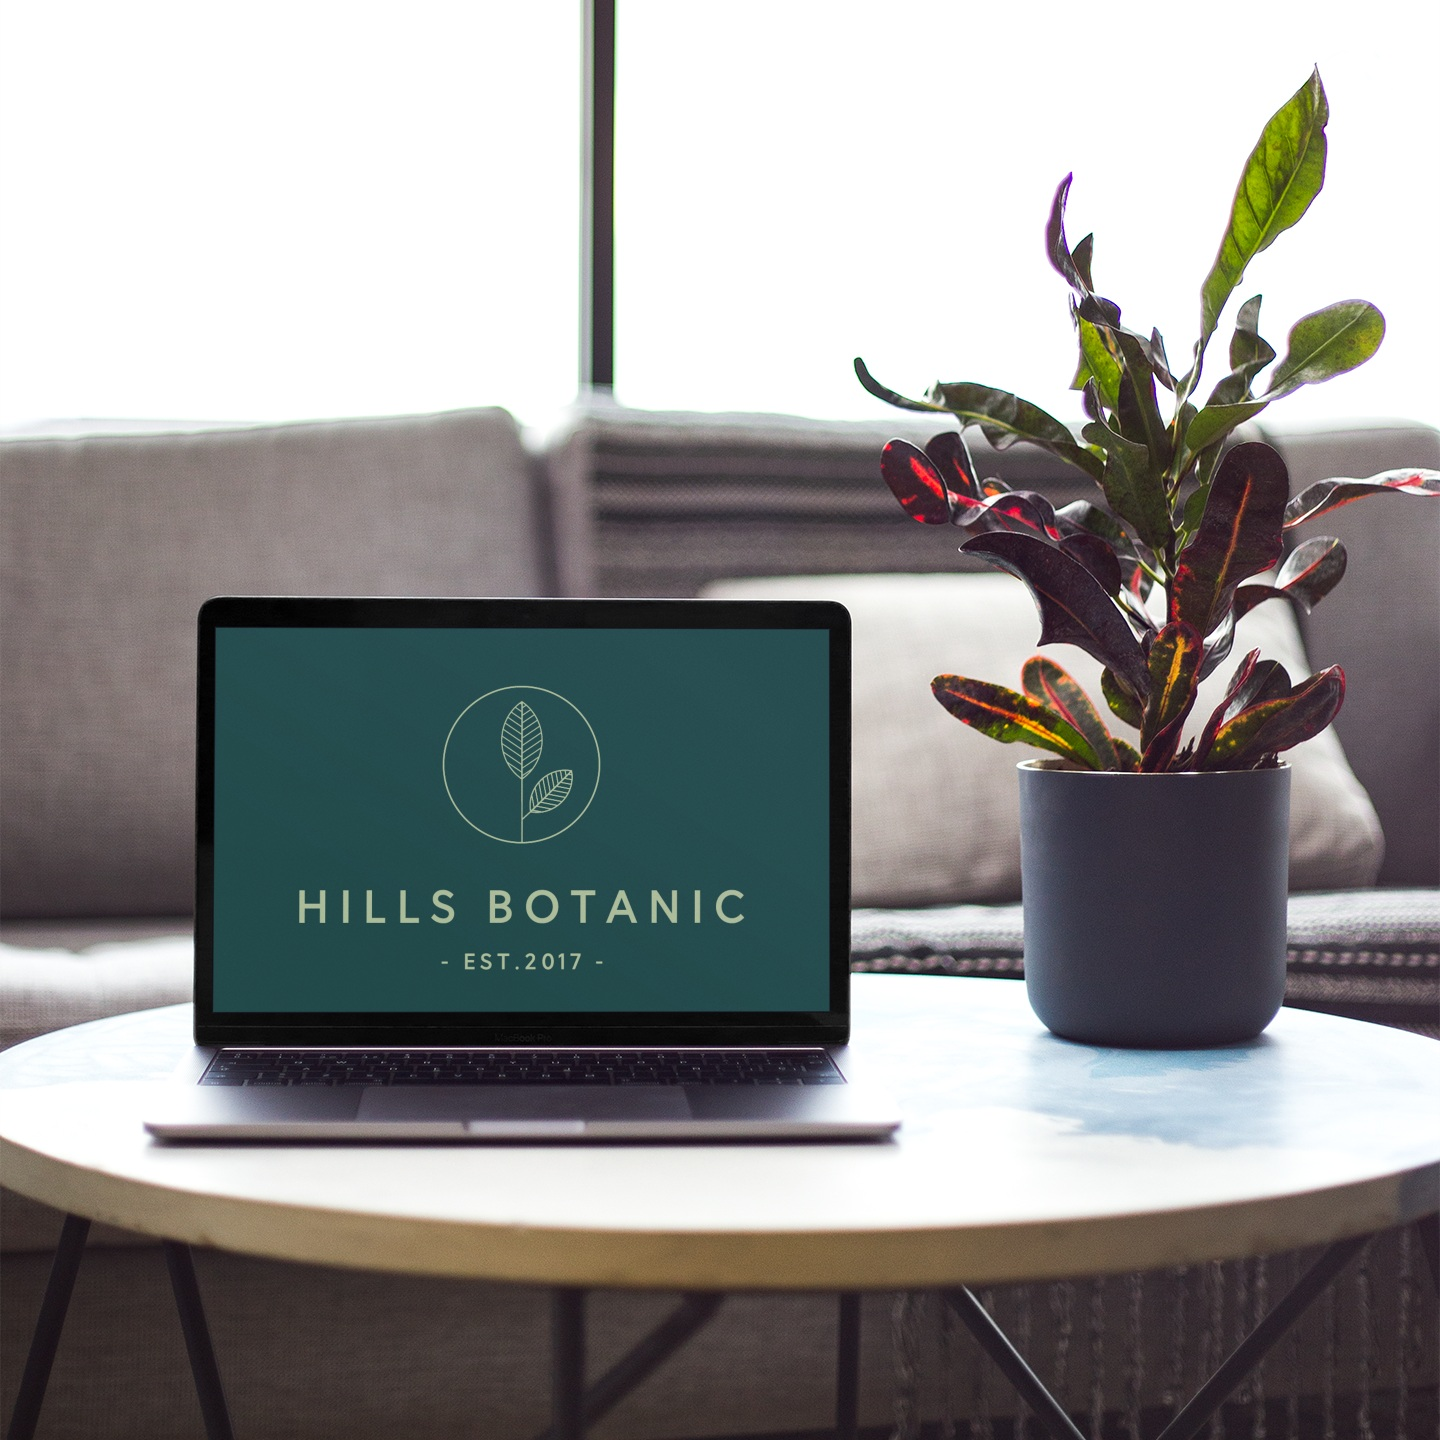 macbook-mockup-on-a-coffee-table-next-to-a-plant-pot-21615.png